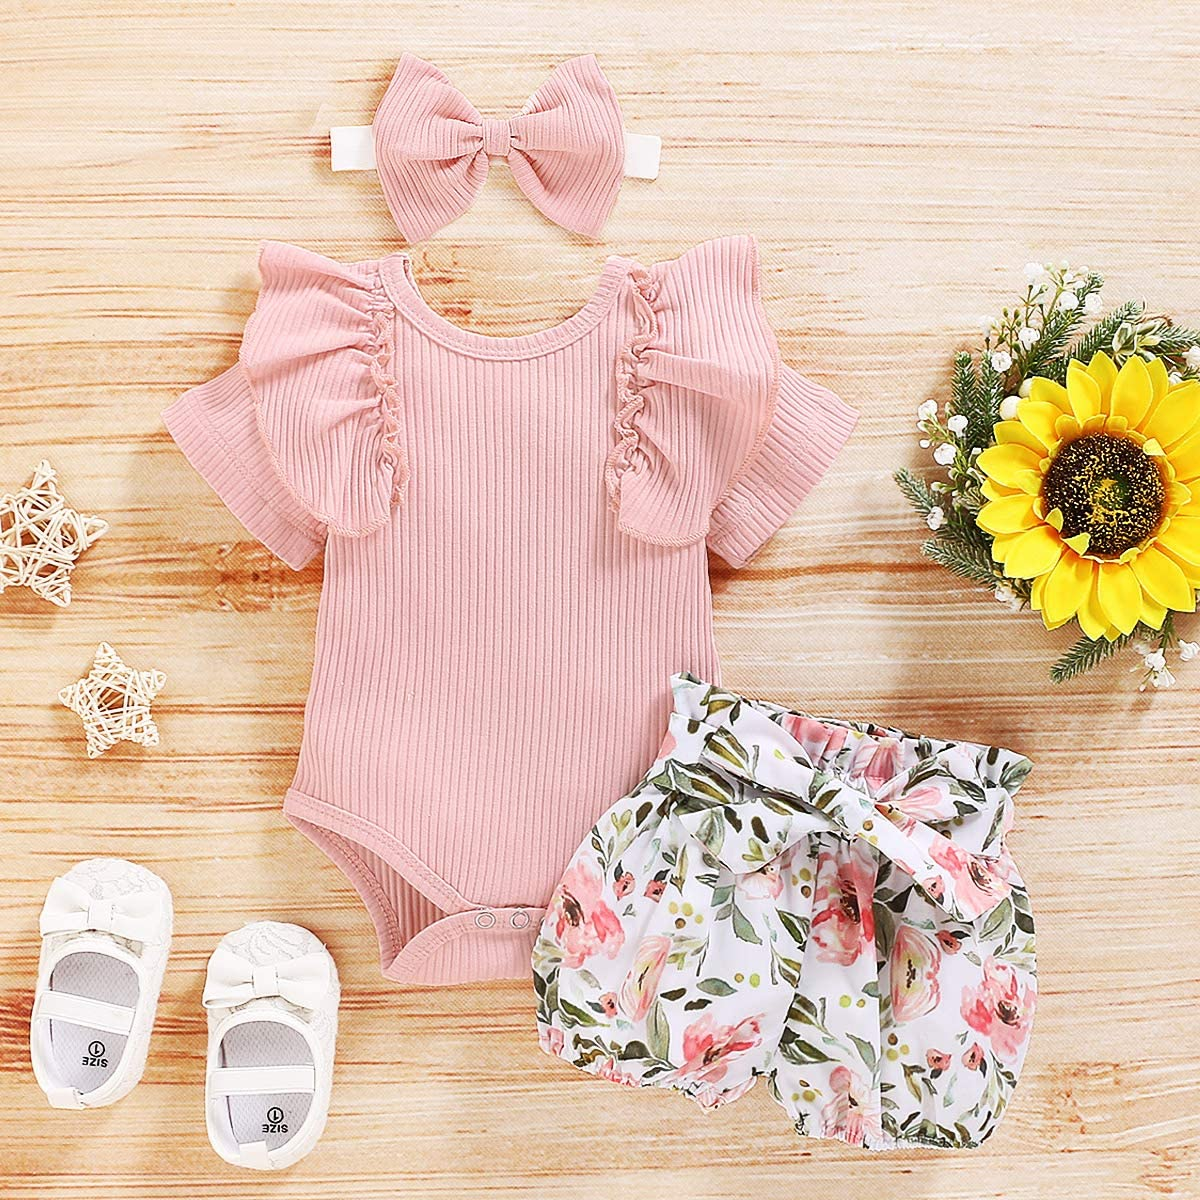 Pant Set with Headband Solid Color Ruffle Short Sleeve Tops bilison Toddler Baby Girl Clothes Outfits